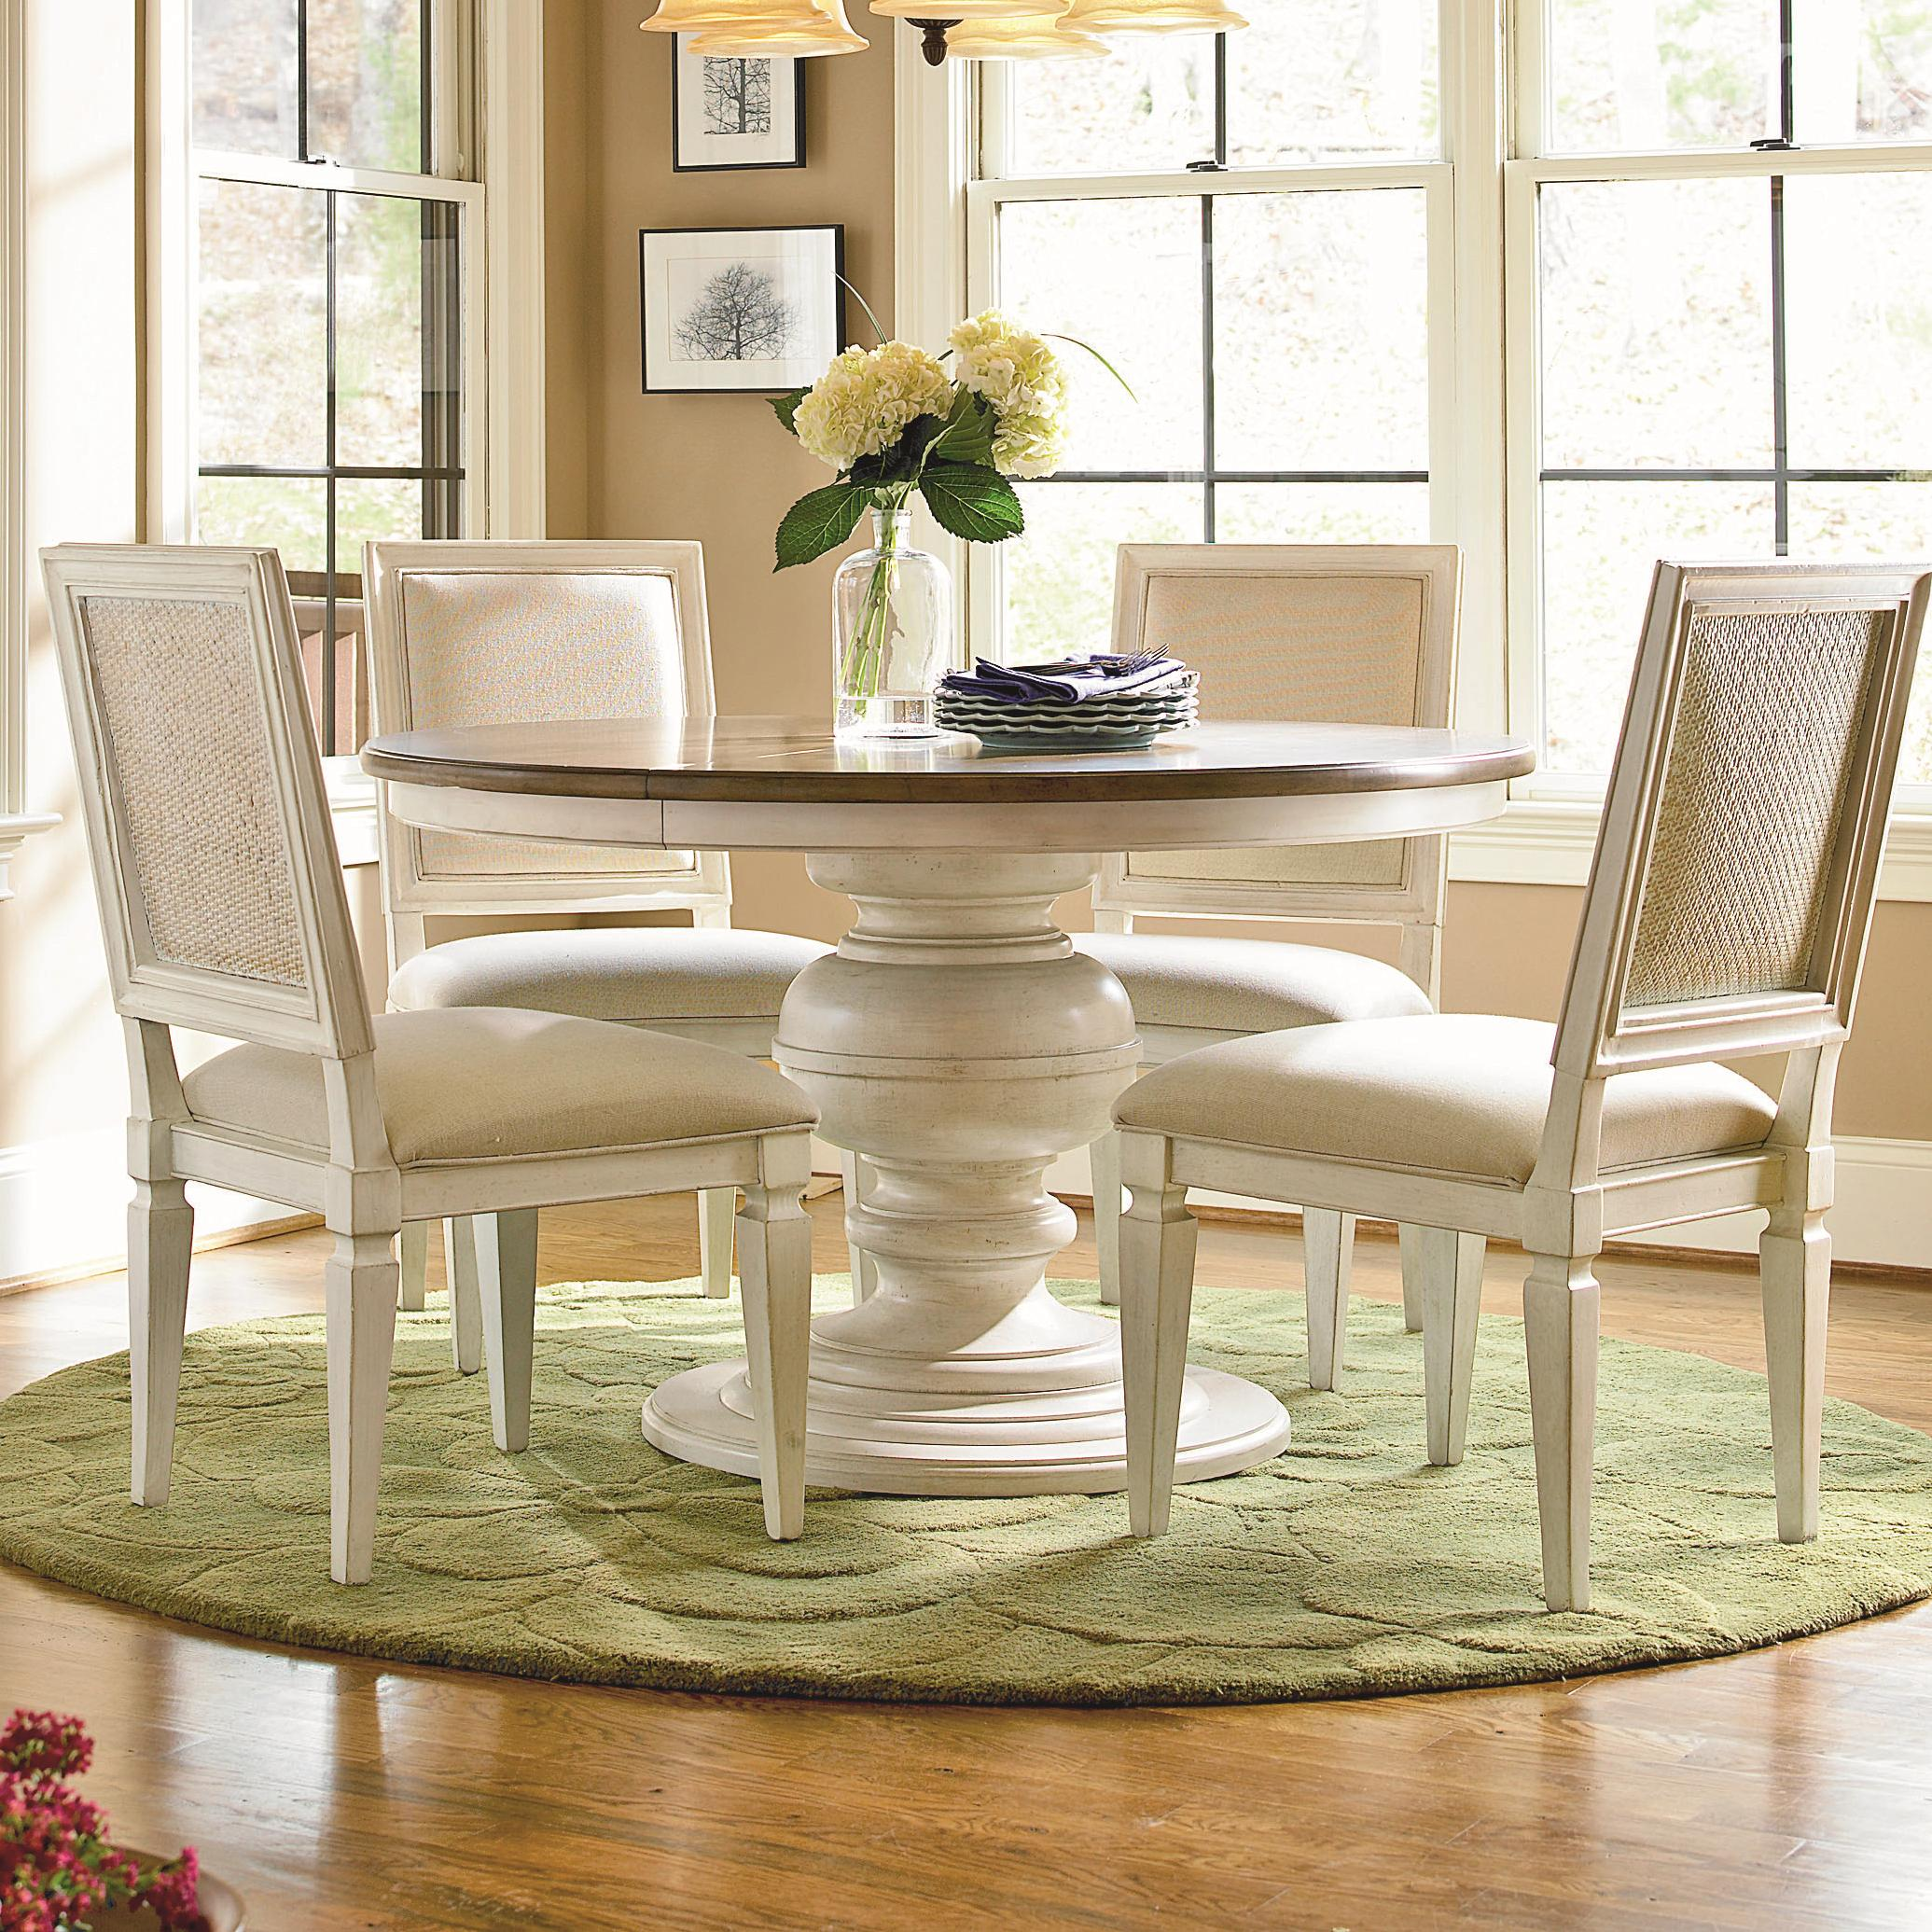 Summer Hill 6 Piece Dining Table and Chair Set by Universal at Baer's Furniture